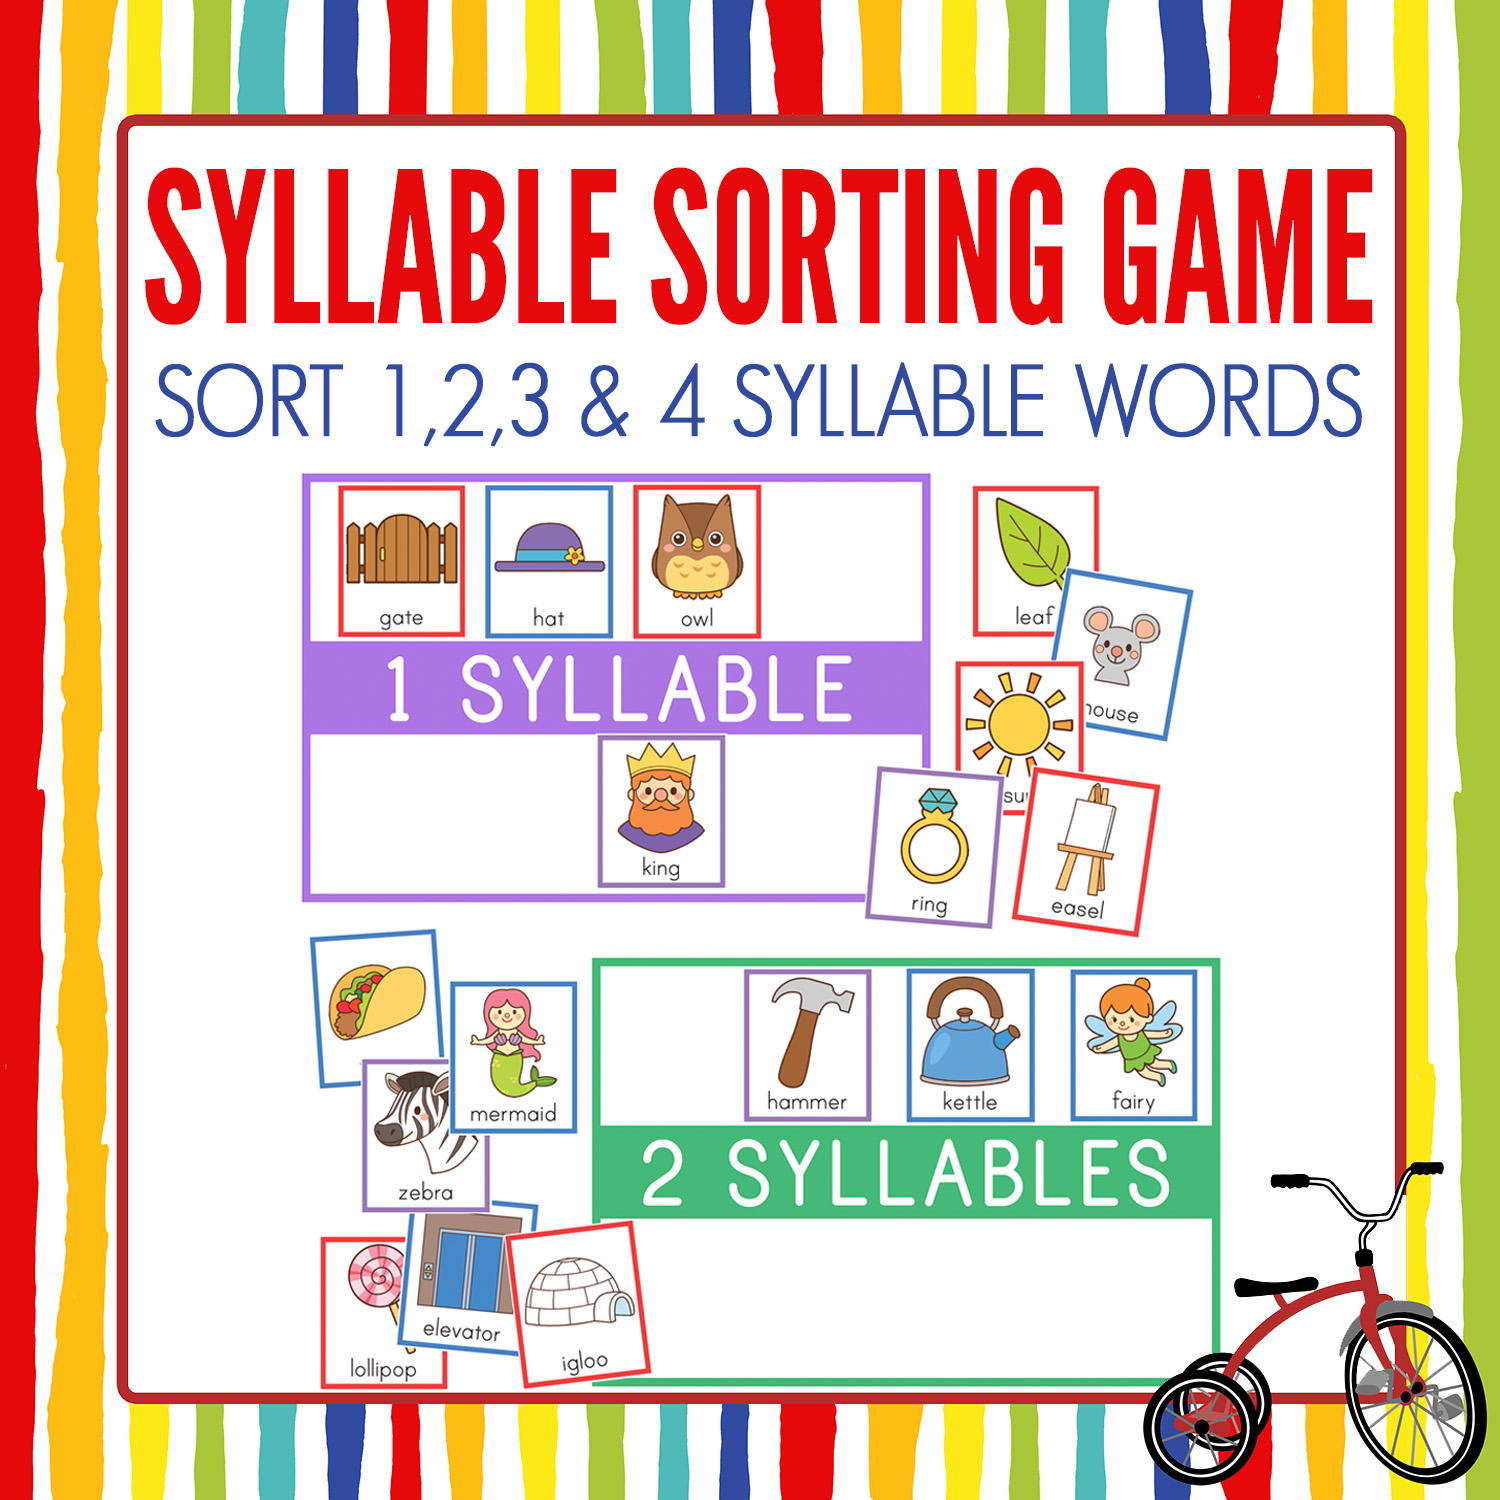 Syllables sorting game